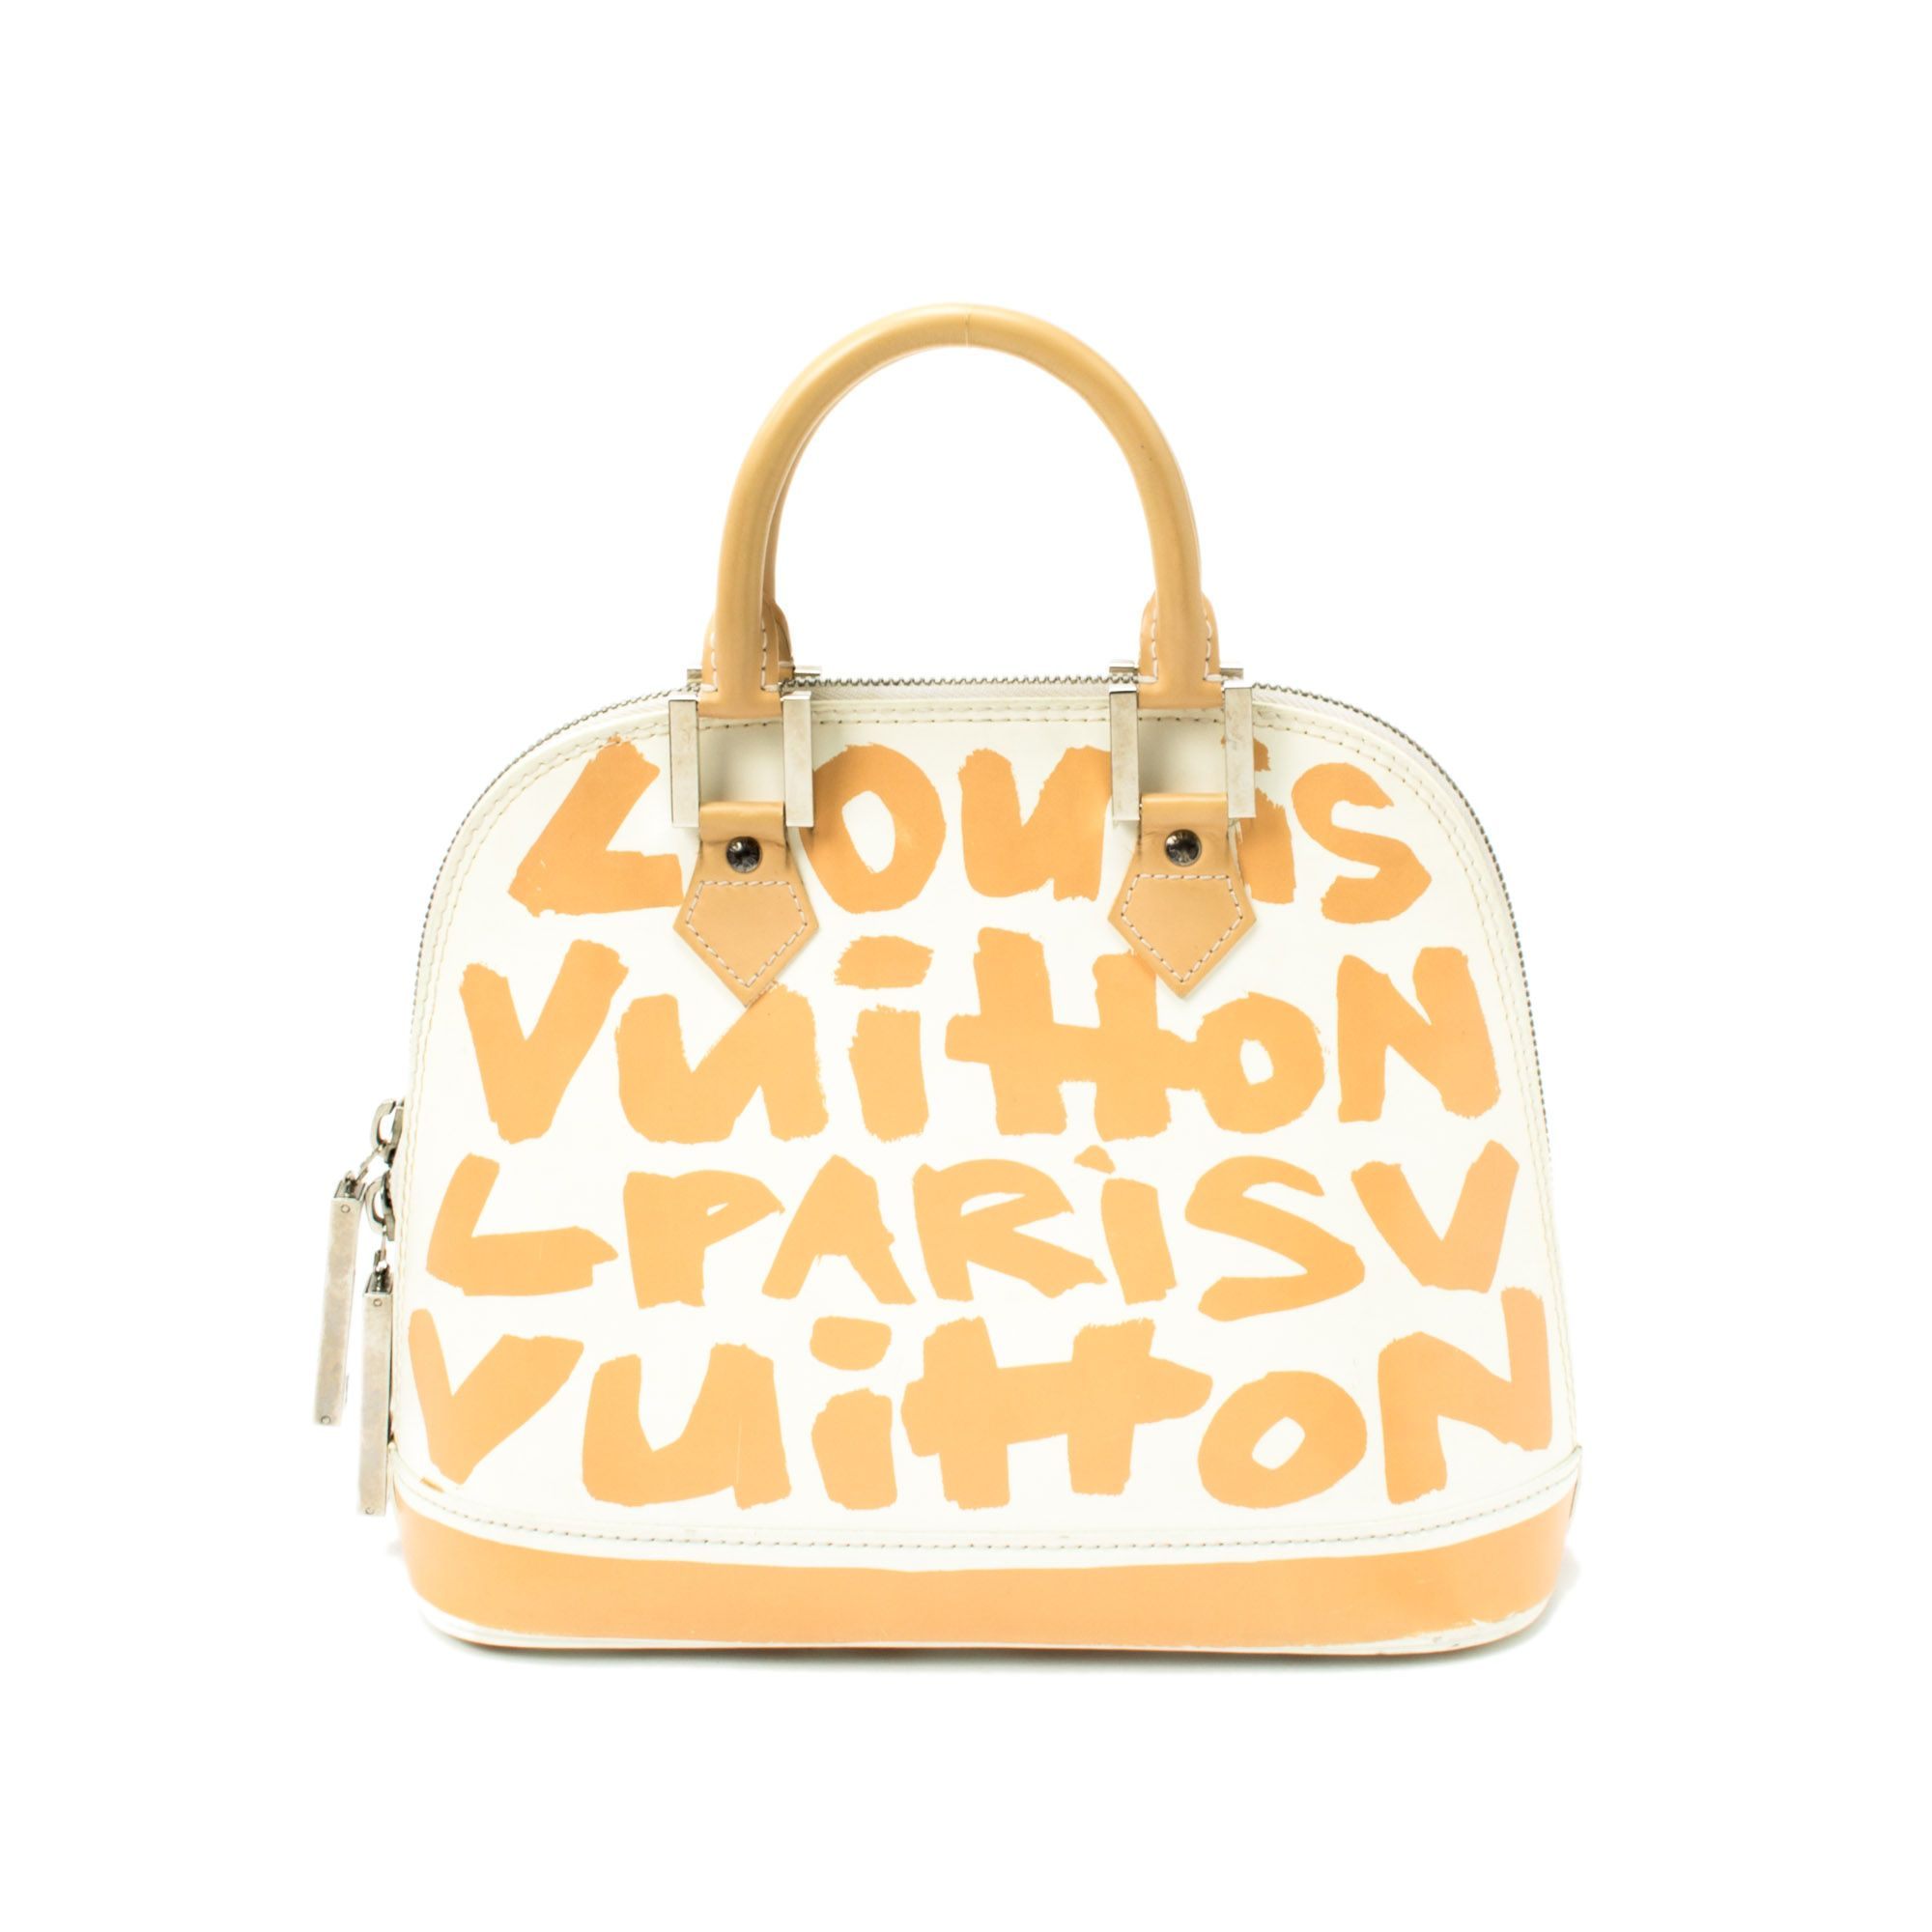 LouisVuitton two tone leather  LimitedEdition  Alma PM in  Graffiti.  Available at lxrco.com for  999 0d3e71319aa6b